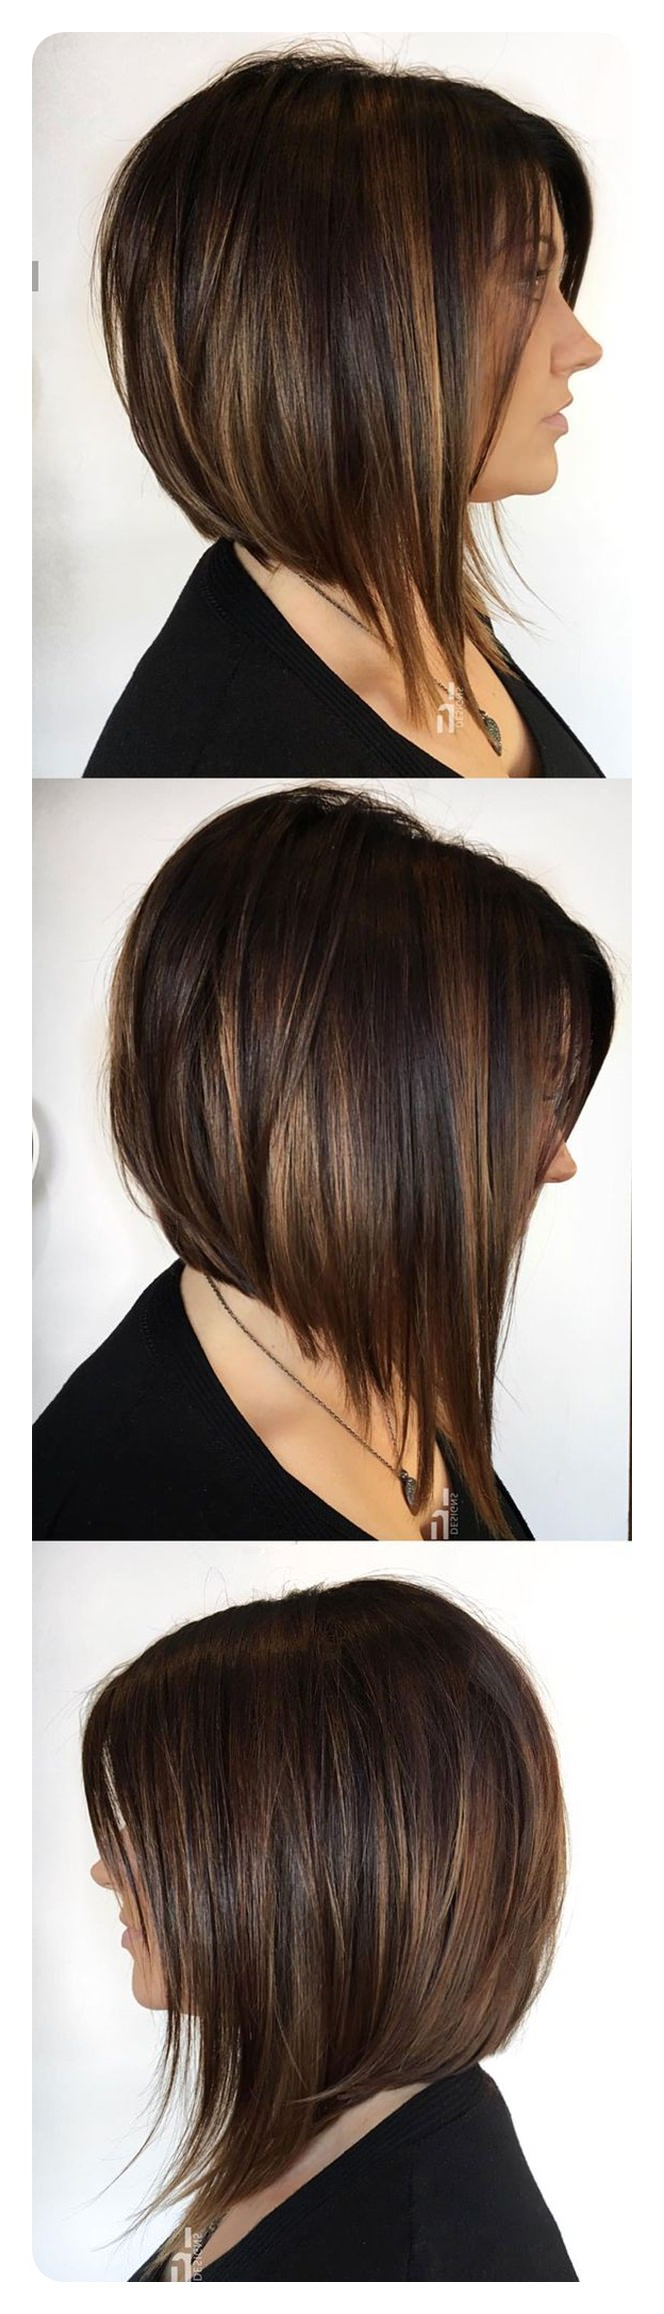 Recent Long Feathered Bangs Hairstyles With Inverted Bob Within 92 Layered Inverted Bob Hairstyles That You Should Try (View 7 of 20)